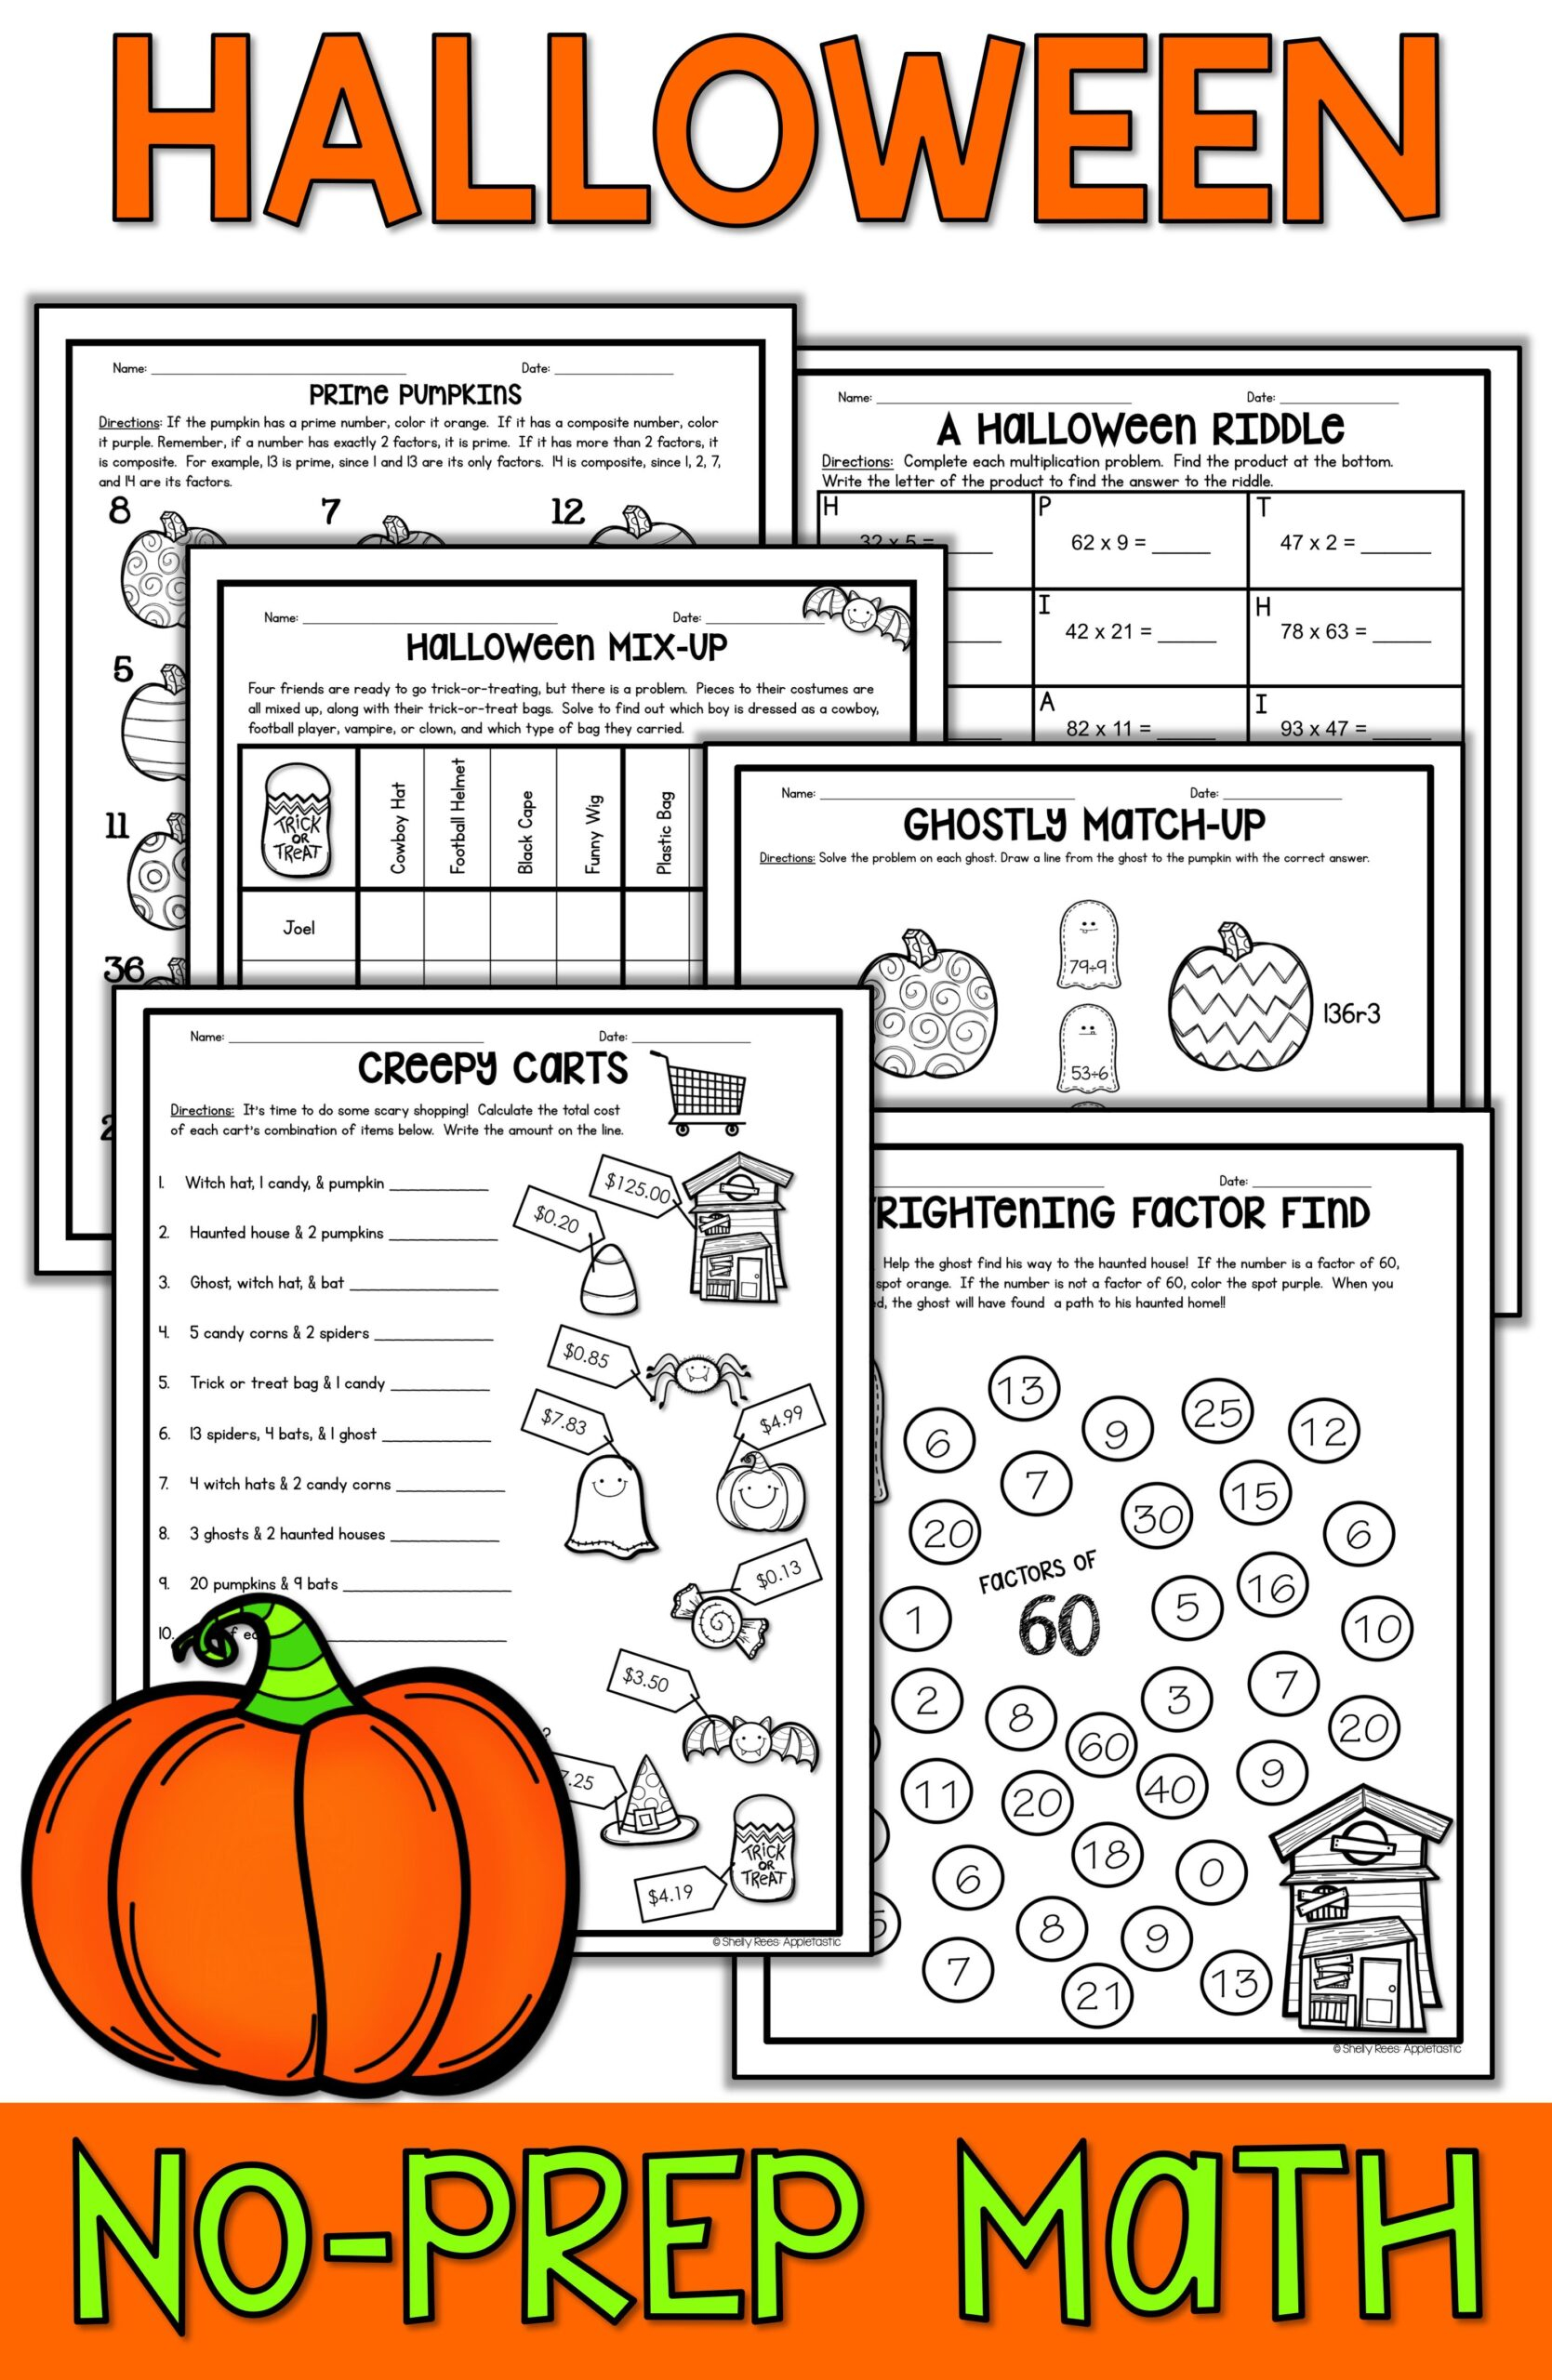 Fun Halloween Math Worksheets Year Questions And Answers